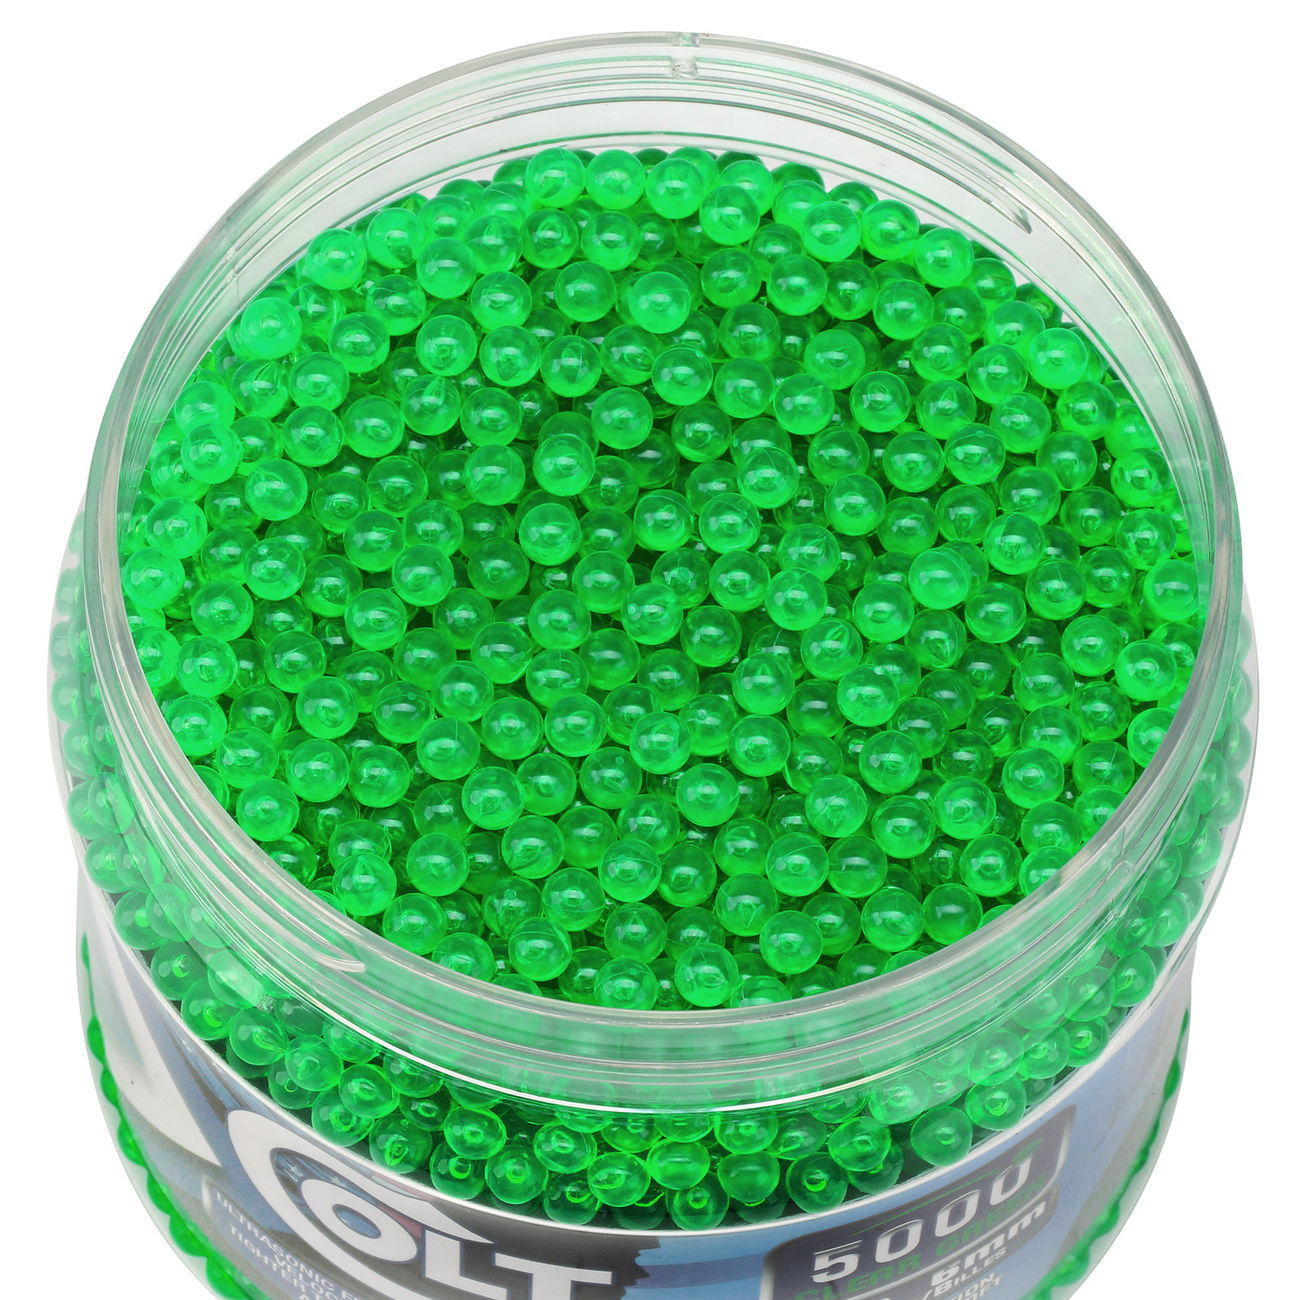 Cybergun Colt Competition Grade BBs 0,12g 5.000er Container Clear Green 1